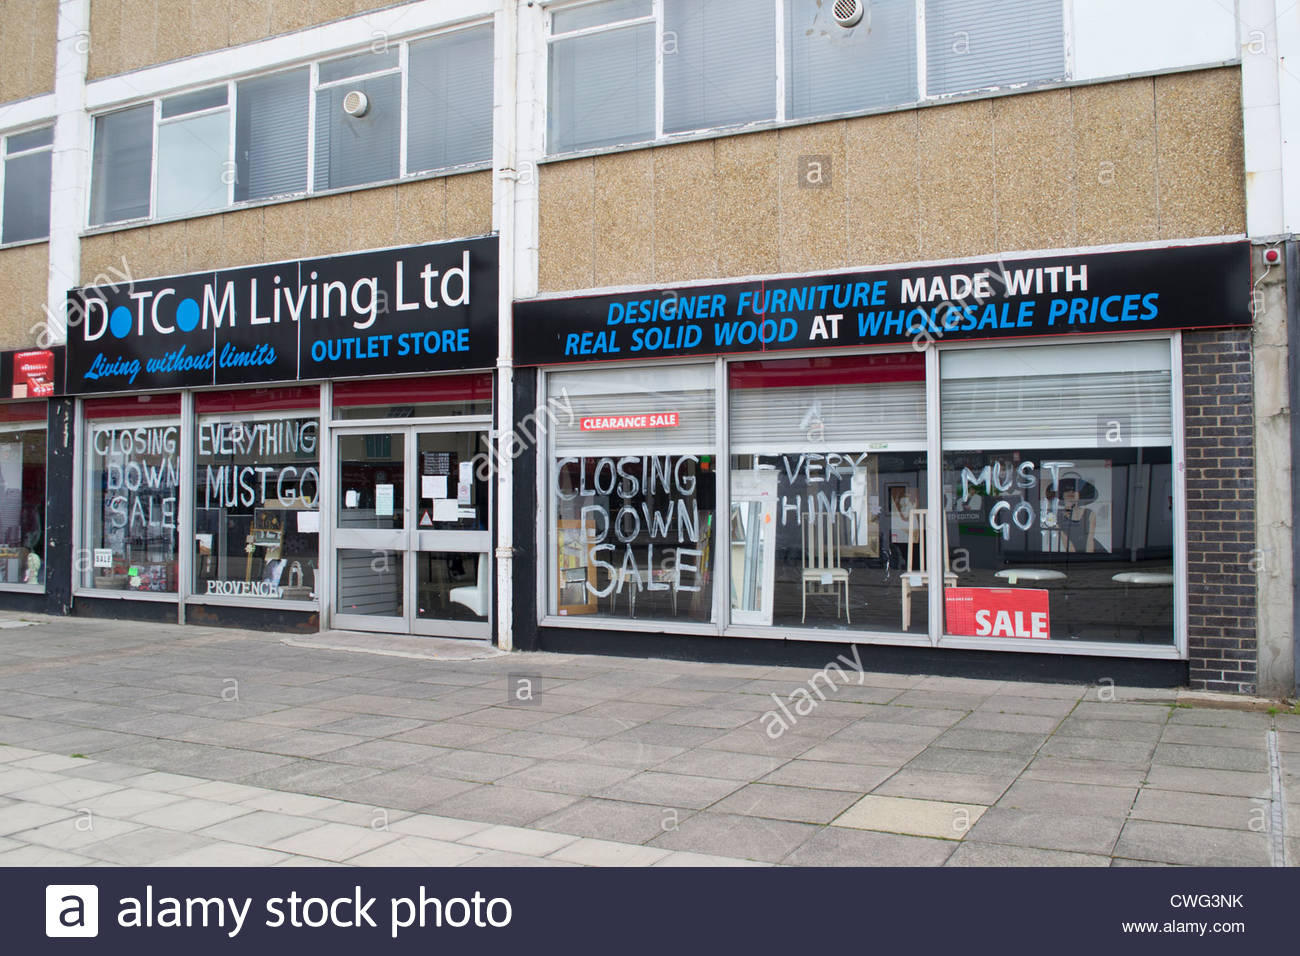 Outlet store closing down in Huntingdon - Stock Image